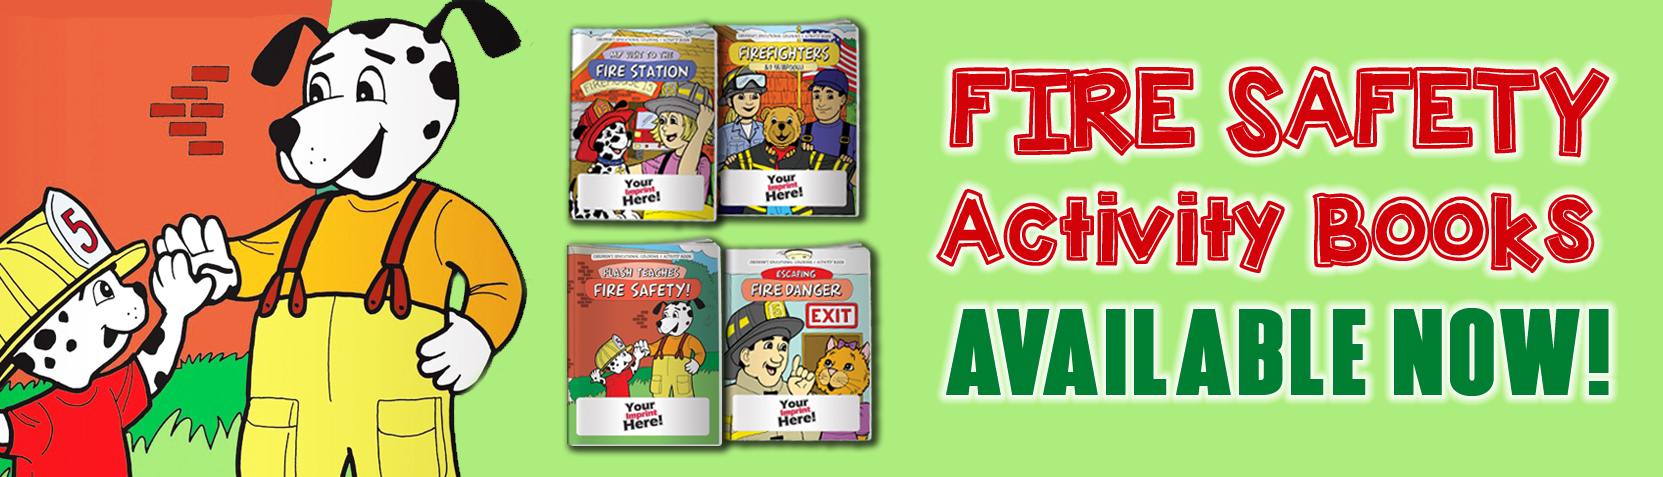 Fire-Safety-ACTIVITY-BOOKS-AVAILABLE-NOW-WEB-Banner